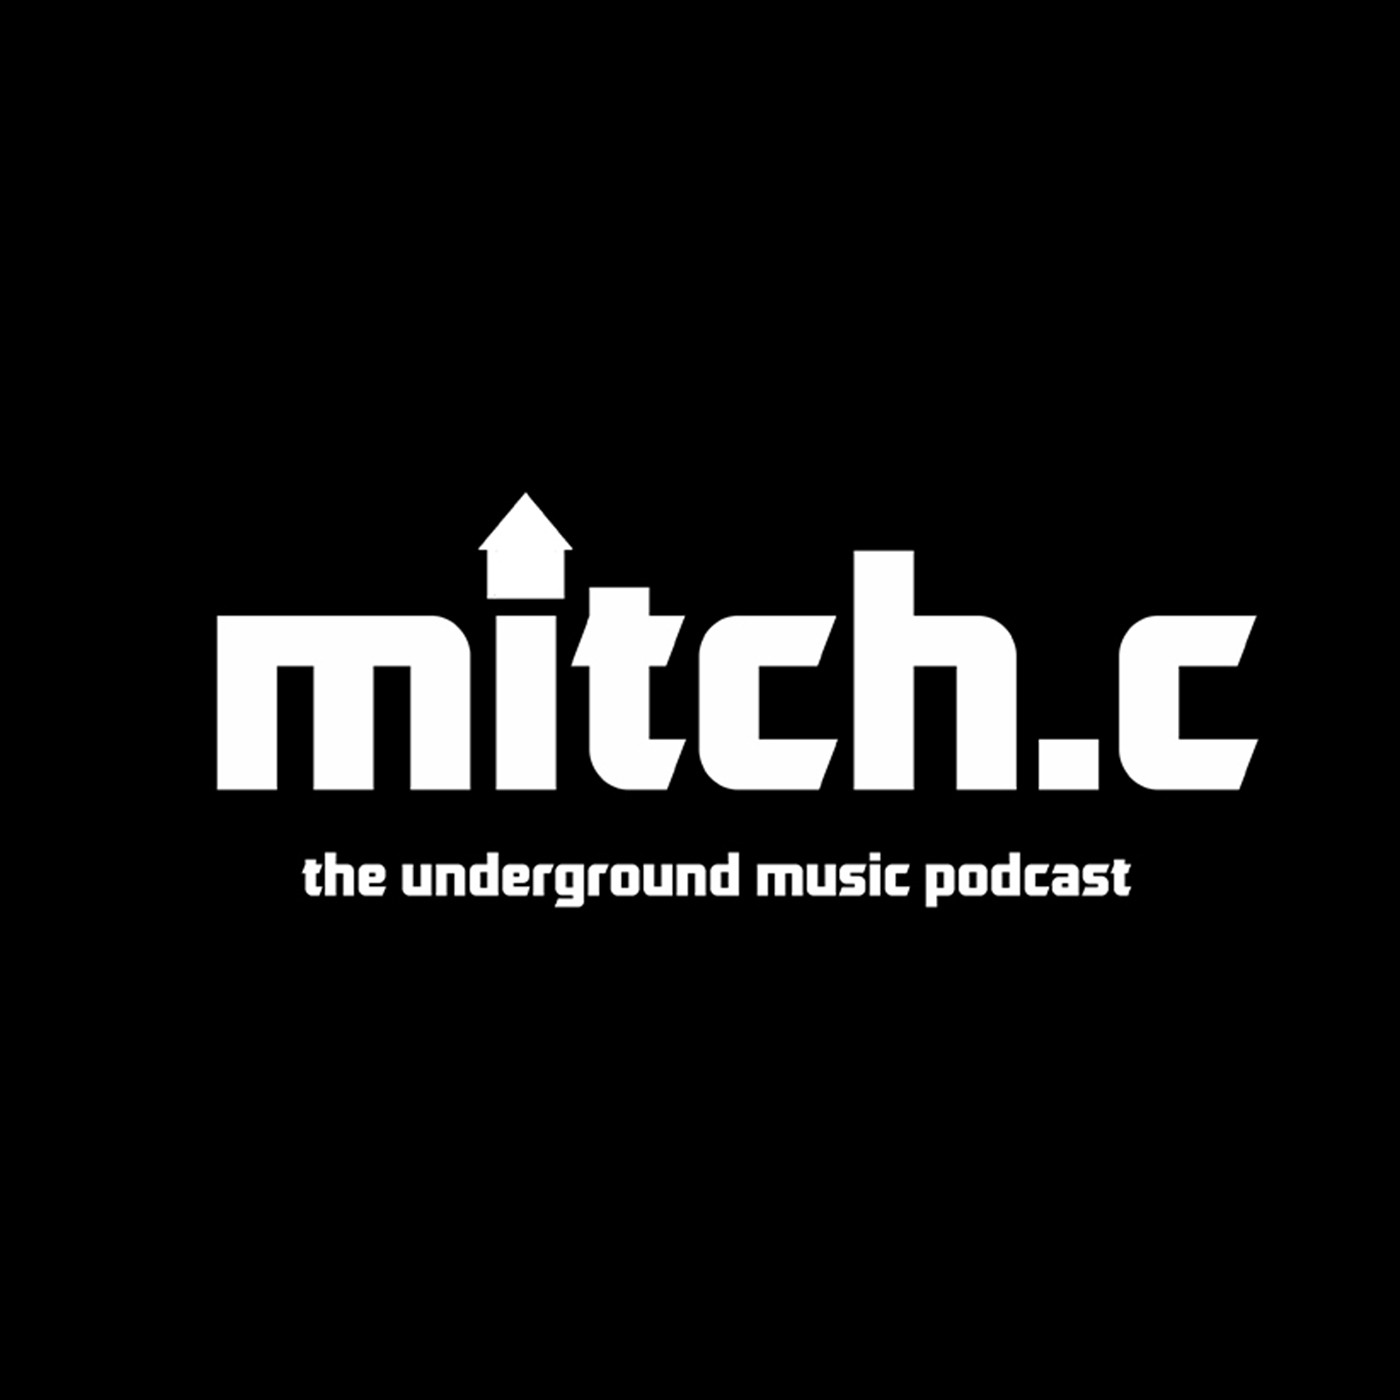 UnderGround Music Podcast - UGMP